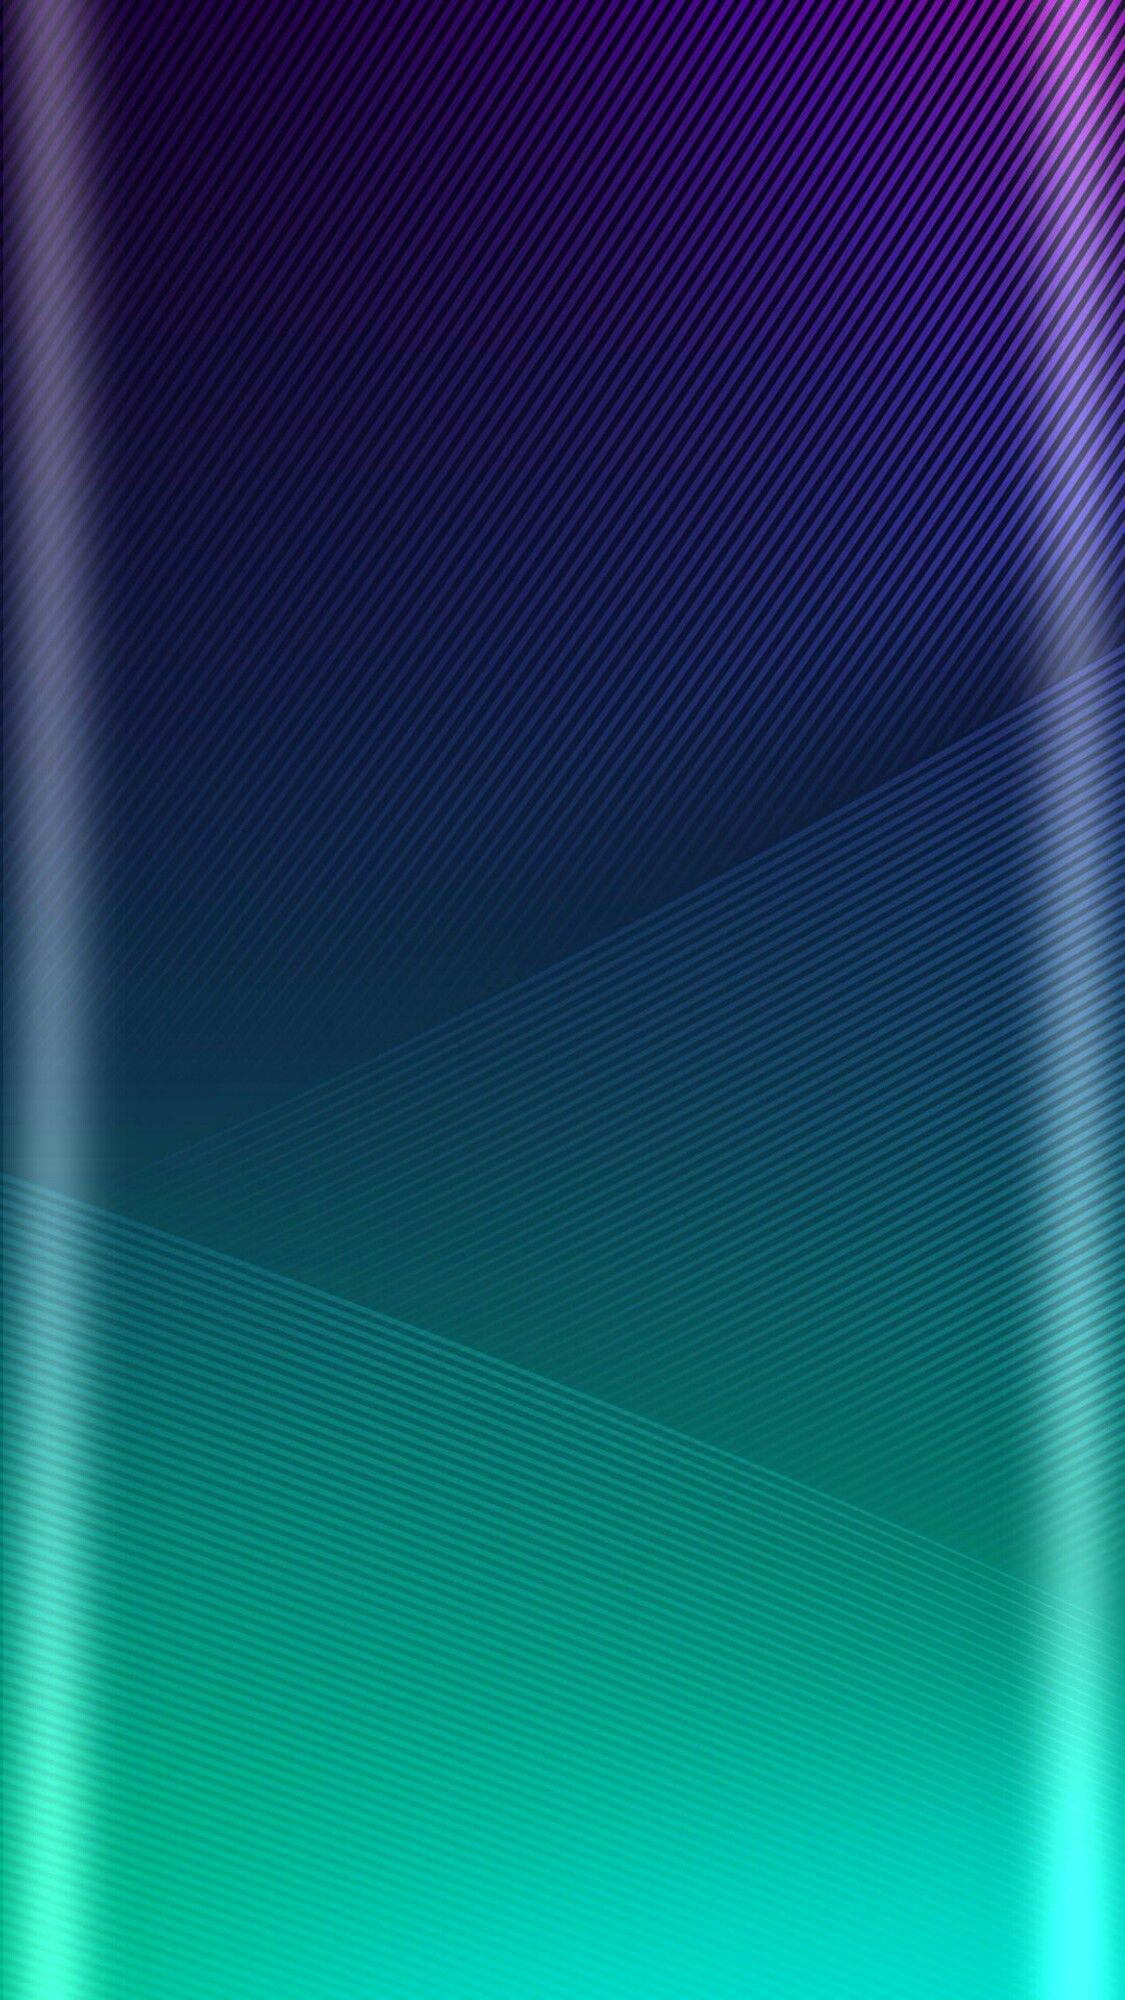 Android Phone Hd Wallpaper